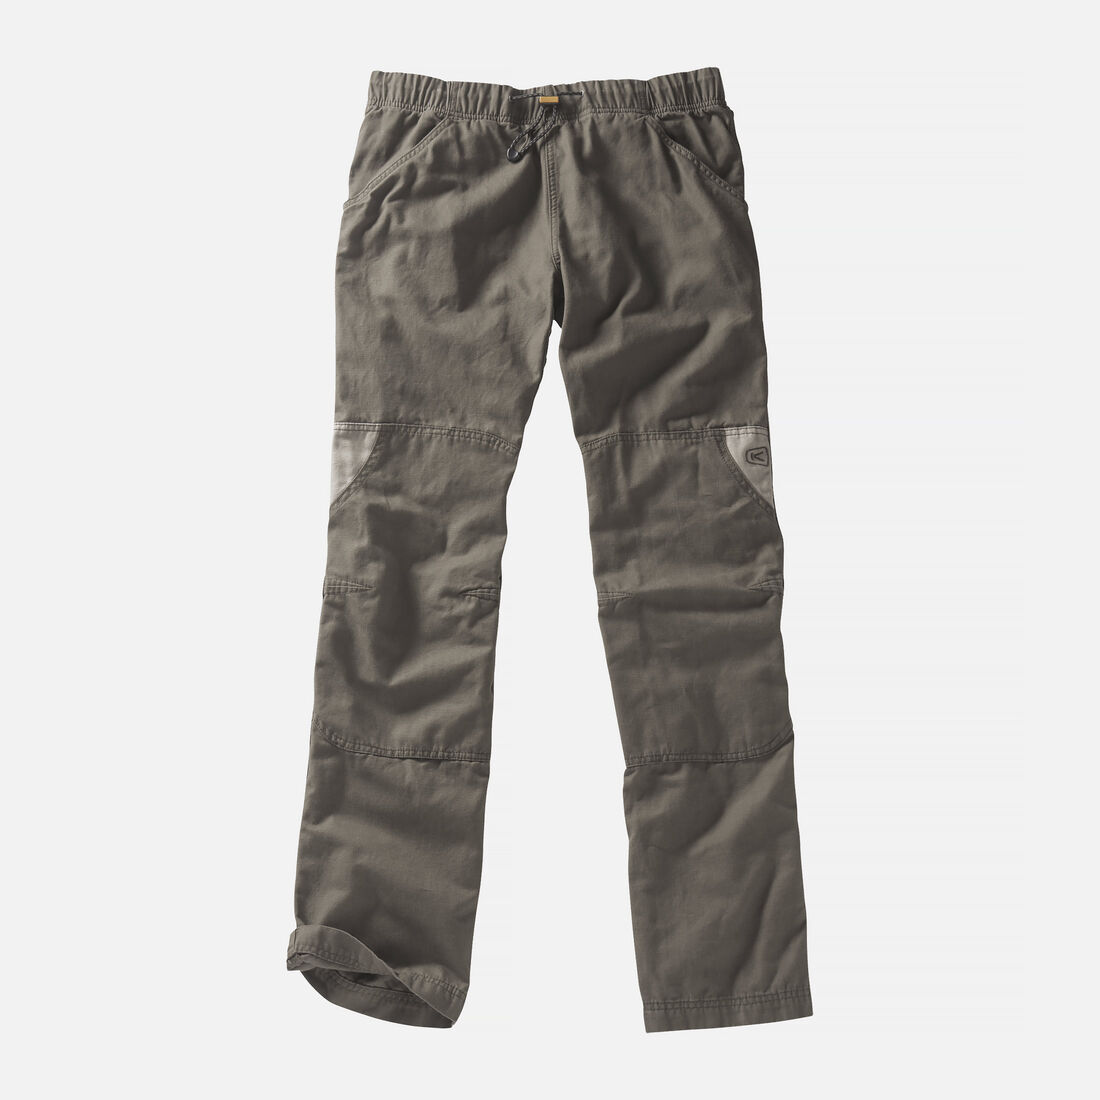 Men's Slacker Pant in Olive Green/Khaki - large view.